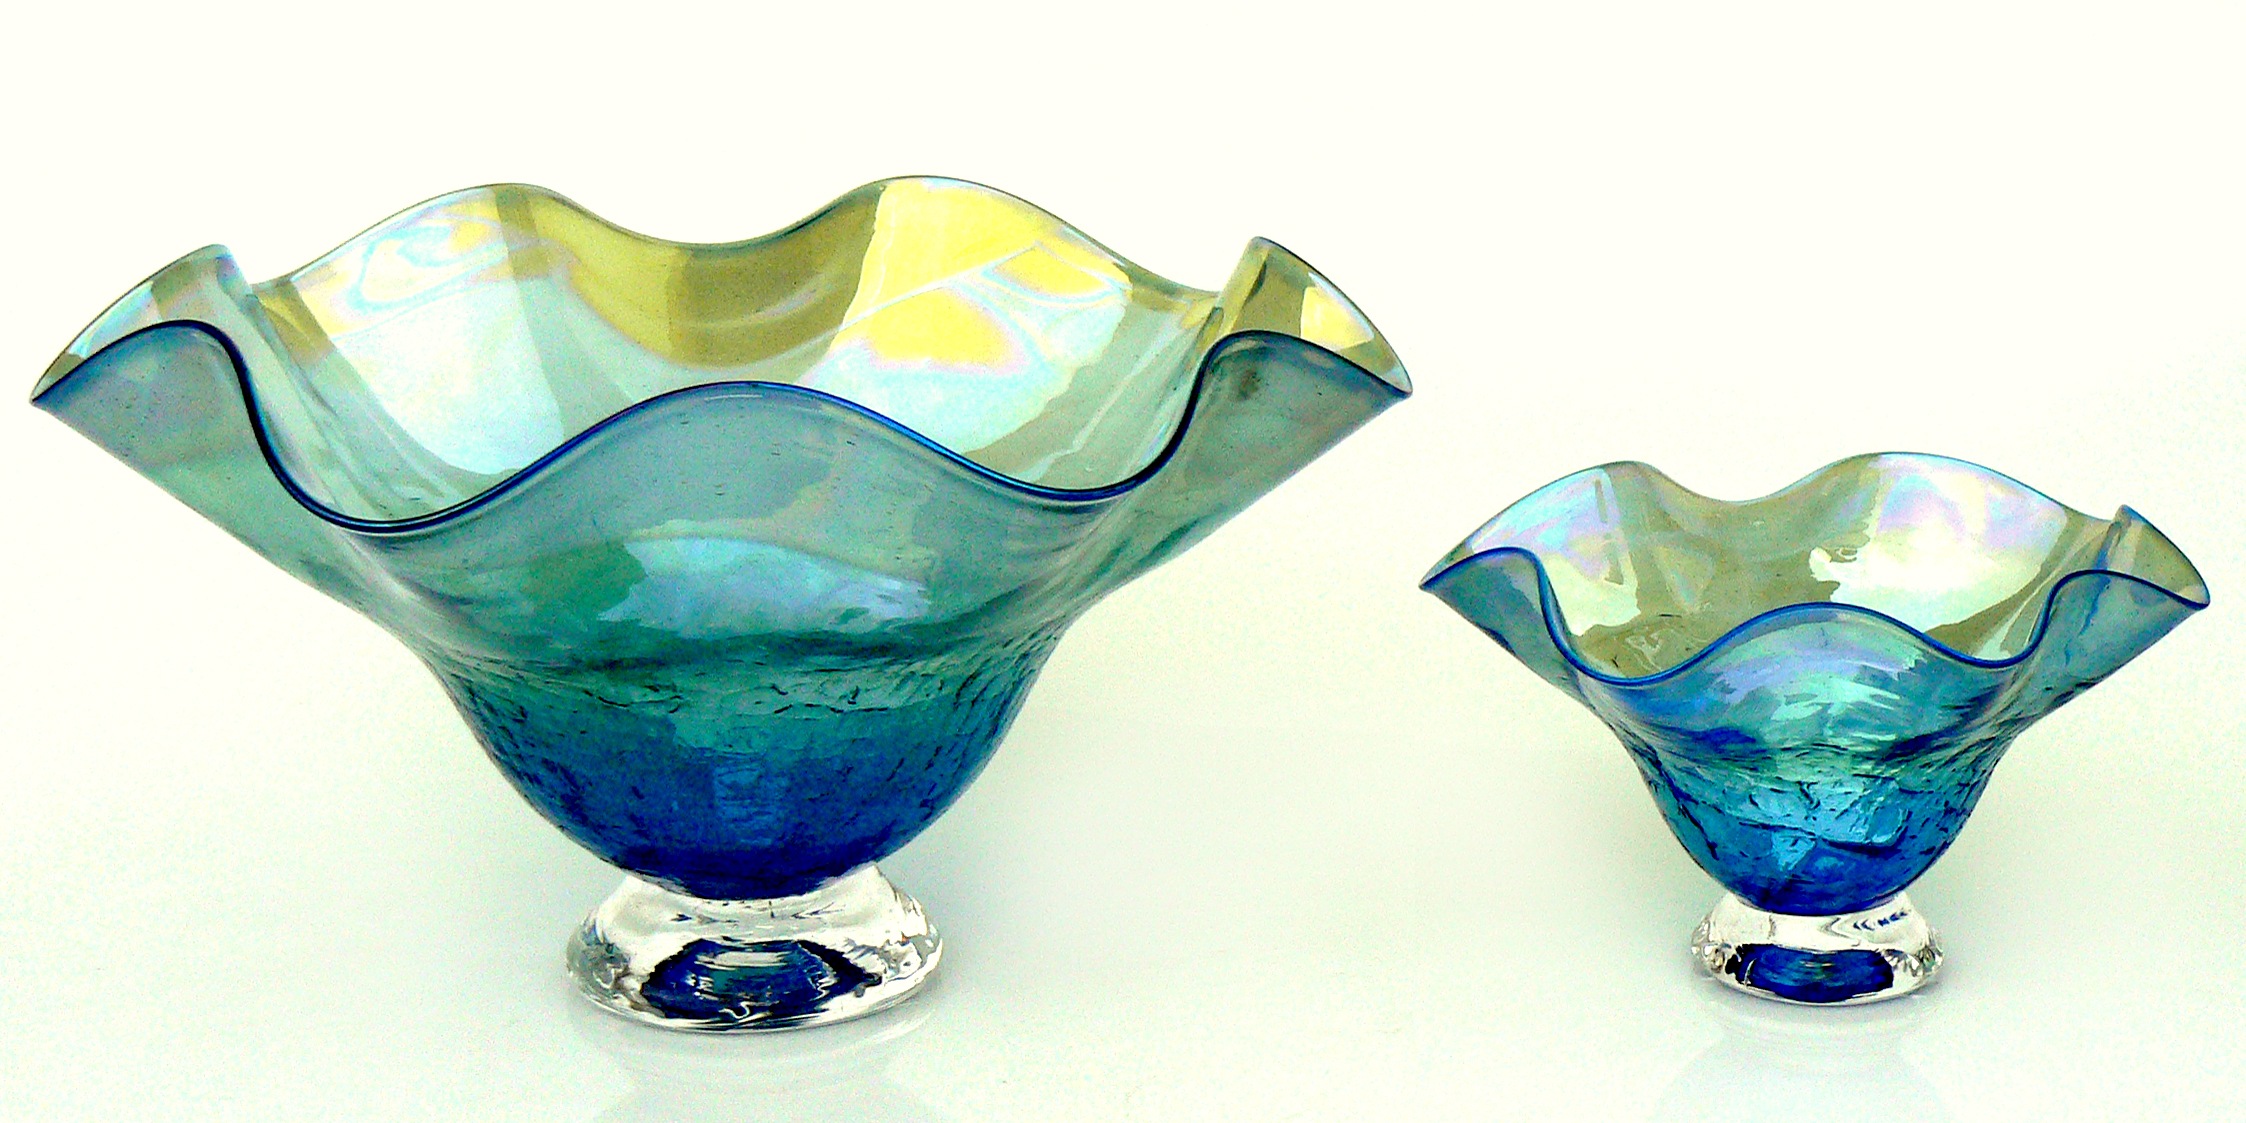 lt blue metallic candy dishes2